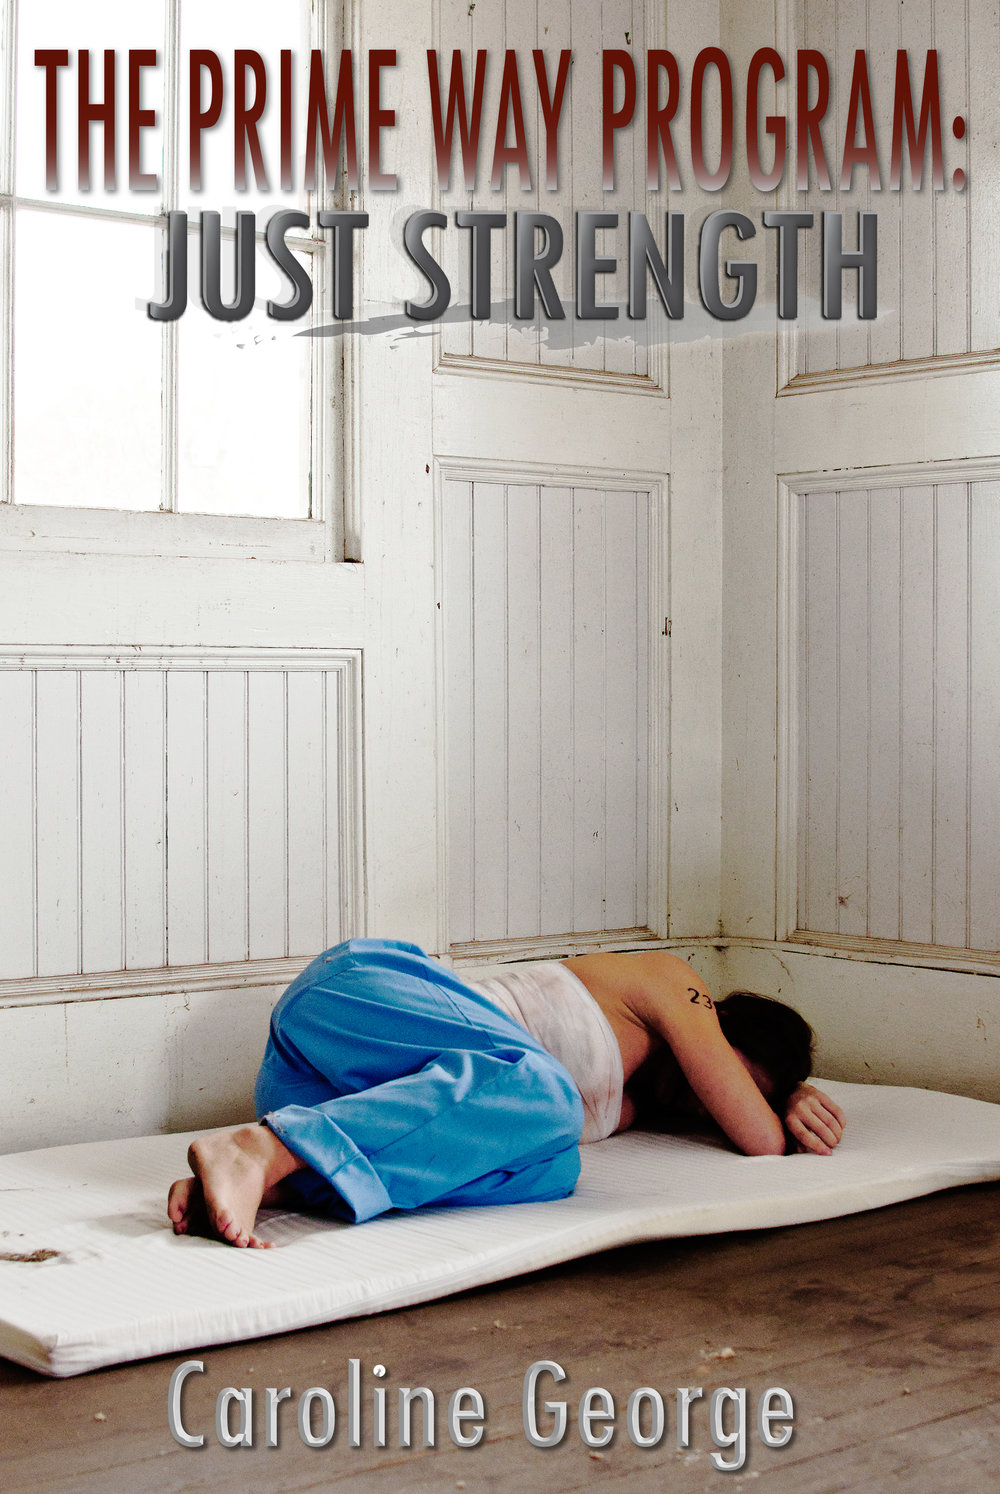 The Prime Way Program- Just Strength, COVER.jpg